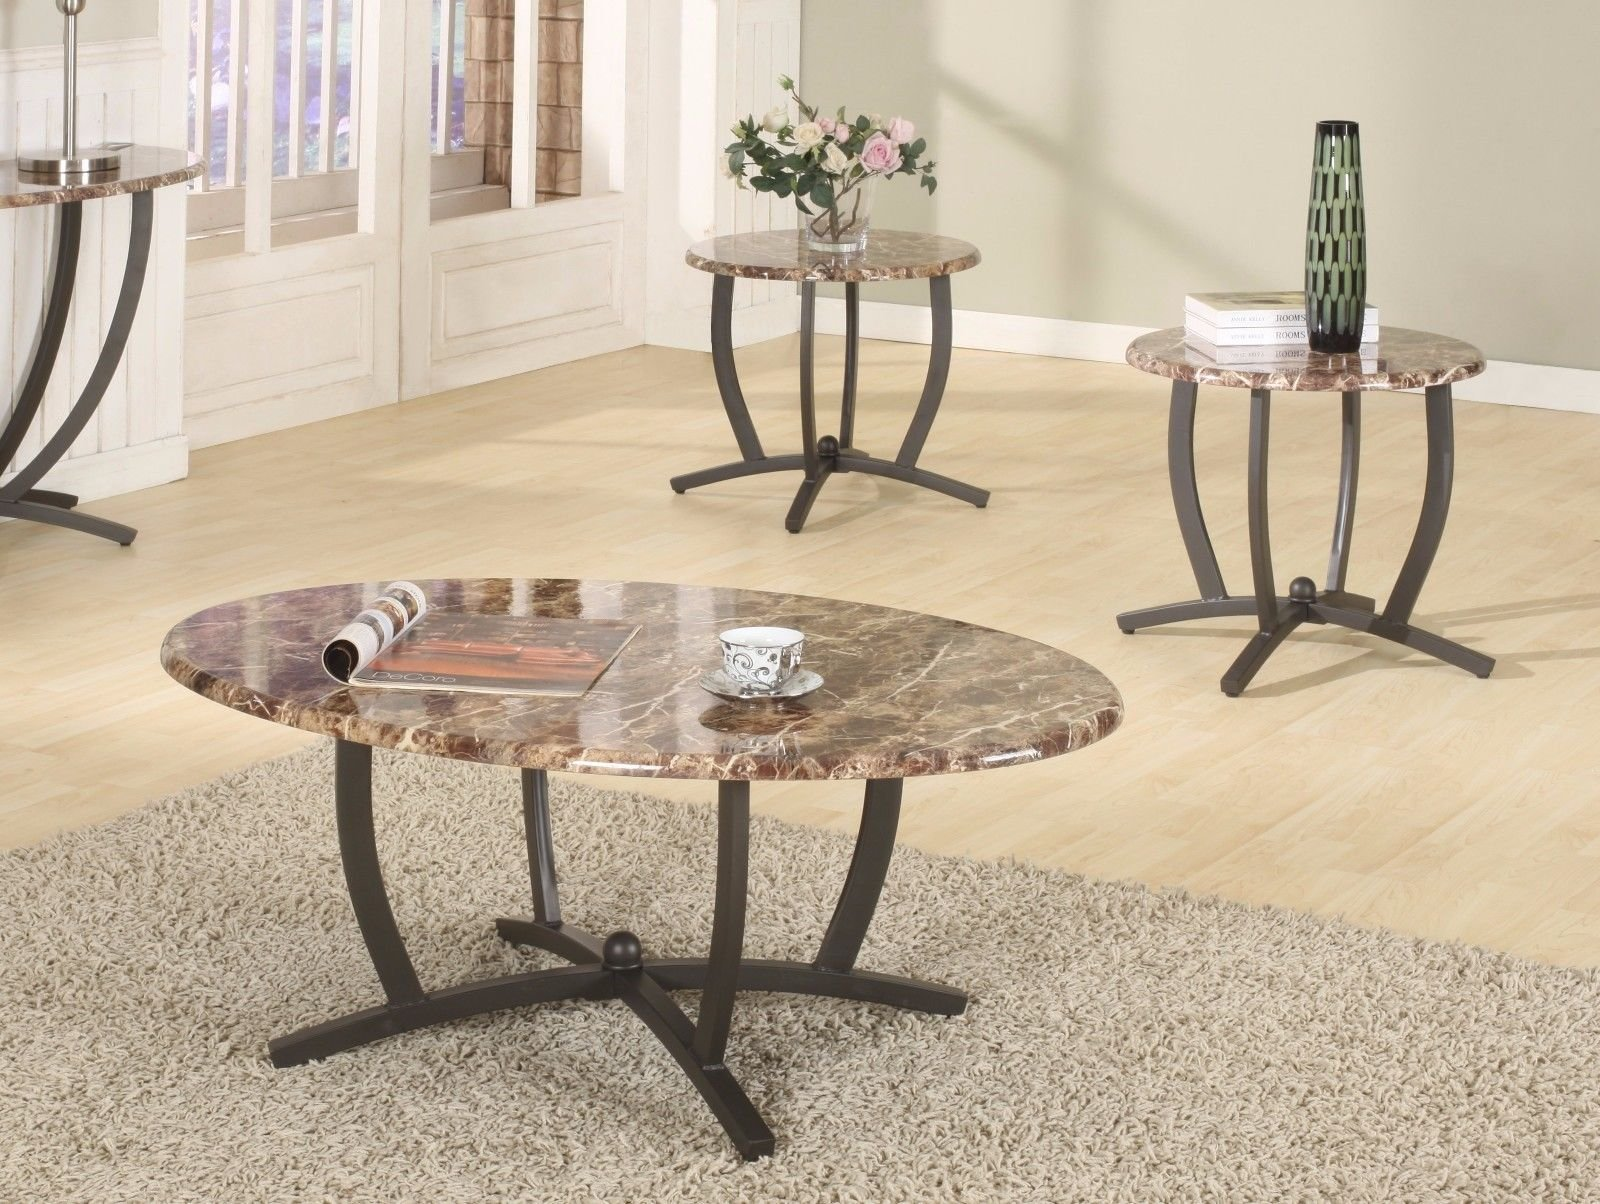 GTU Furniture 3Pc Oval Faux Marble Top Living Room Metal Coffee Table Set, One Coffee Table with Two End Tables